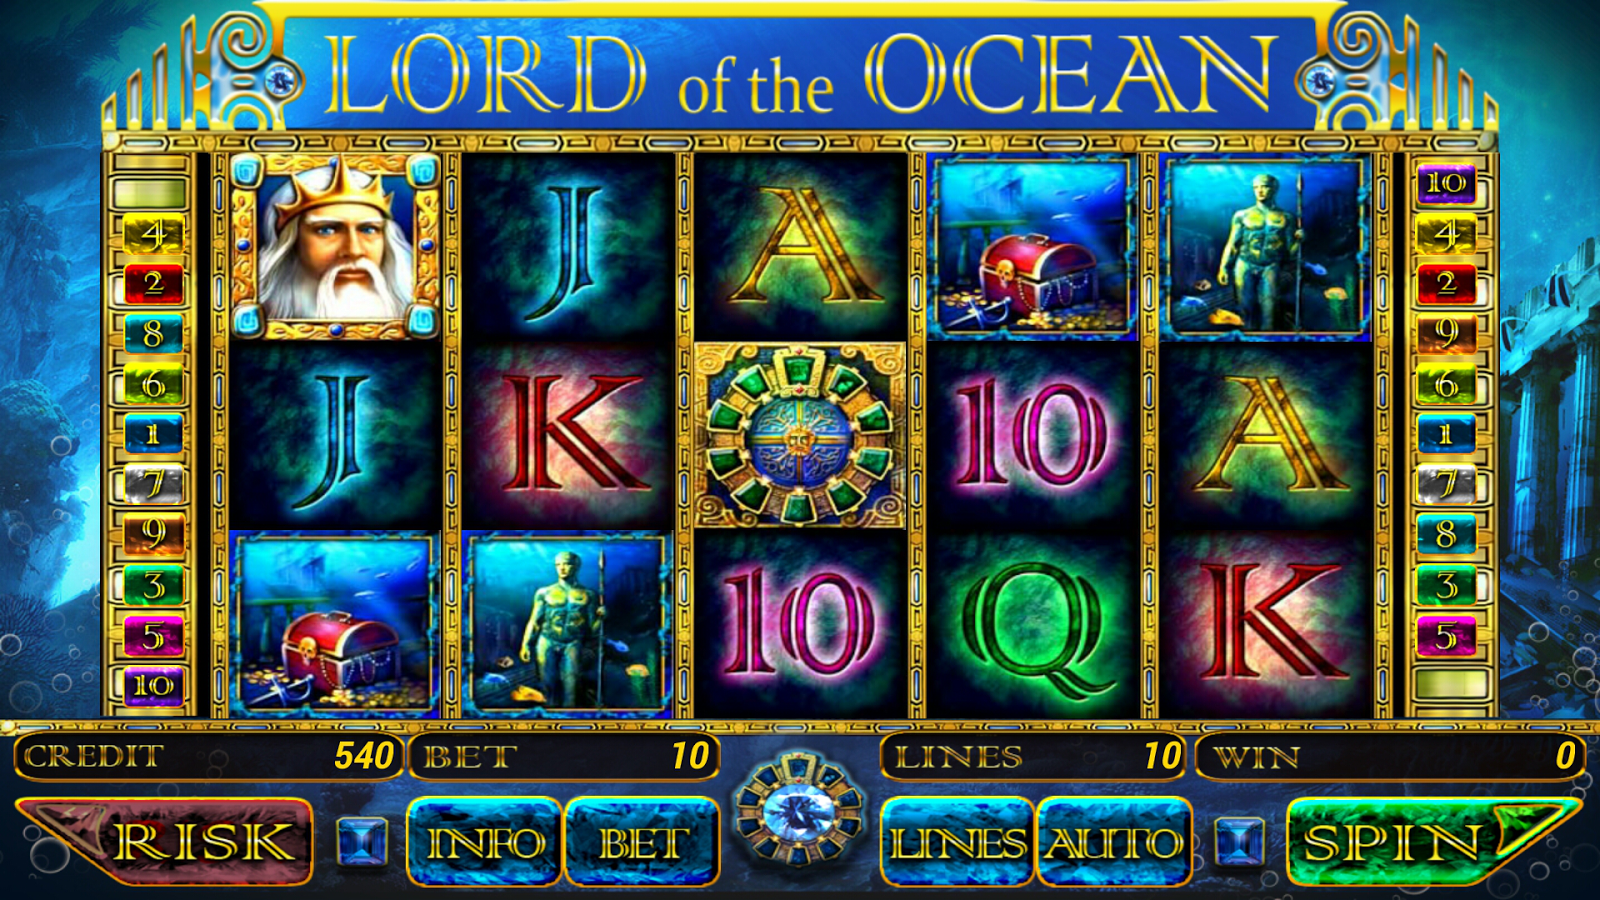 Slot machine: Lord of Ocean piace ai giocatori